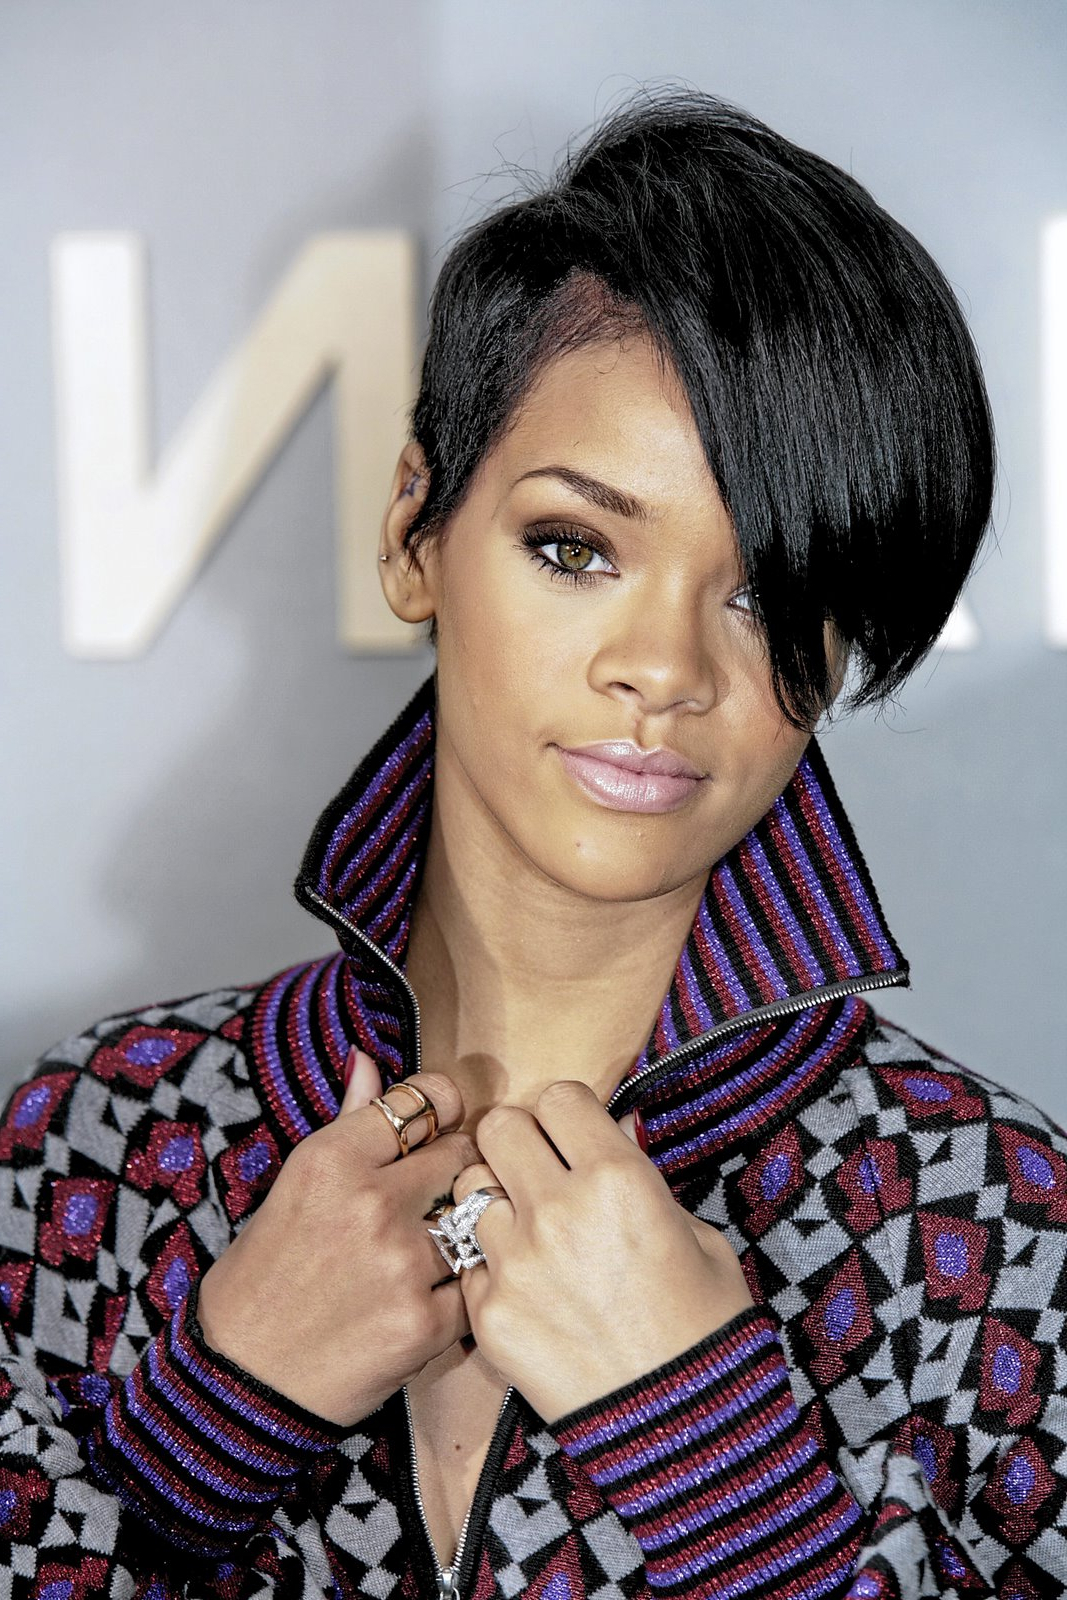 Sexy Short Hairstyles For Black Women – Hairstyle For Women & Man Regarding Short Haircuts For Black Woman (View 16 of 25)